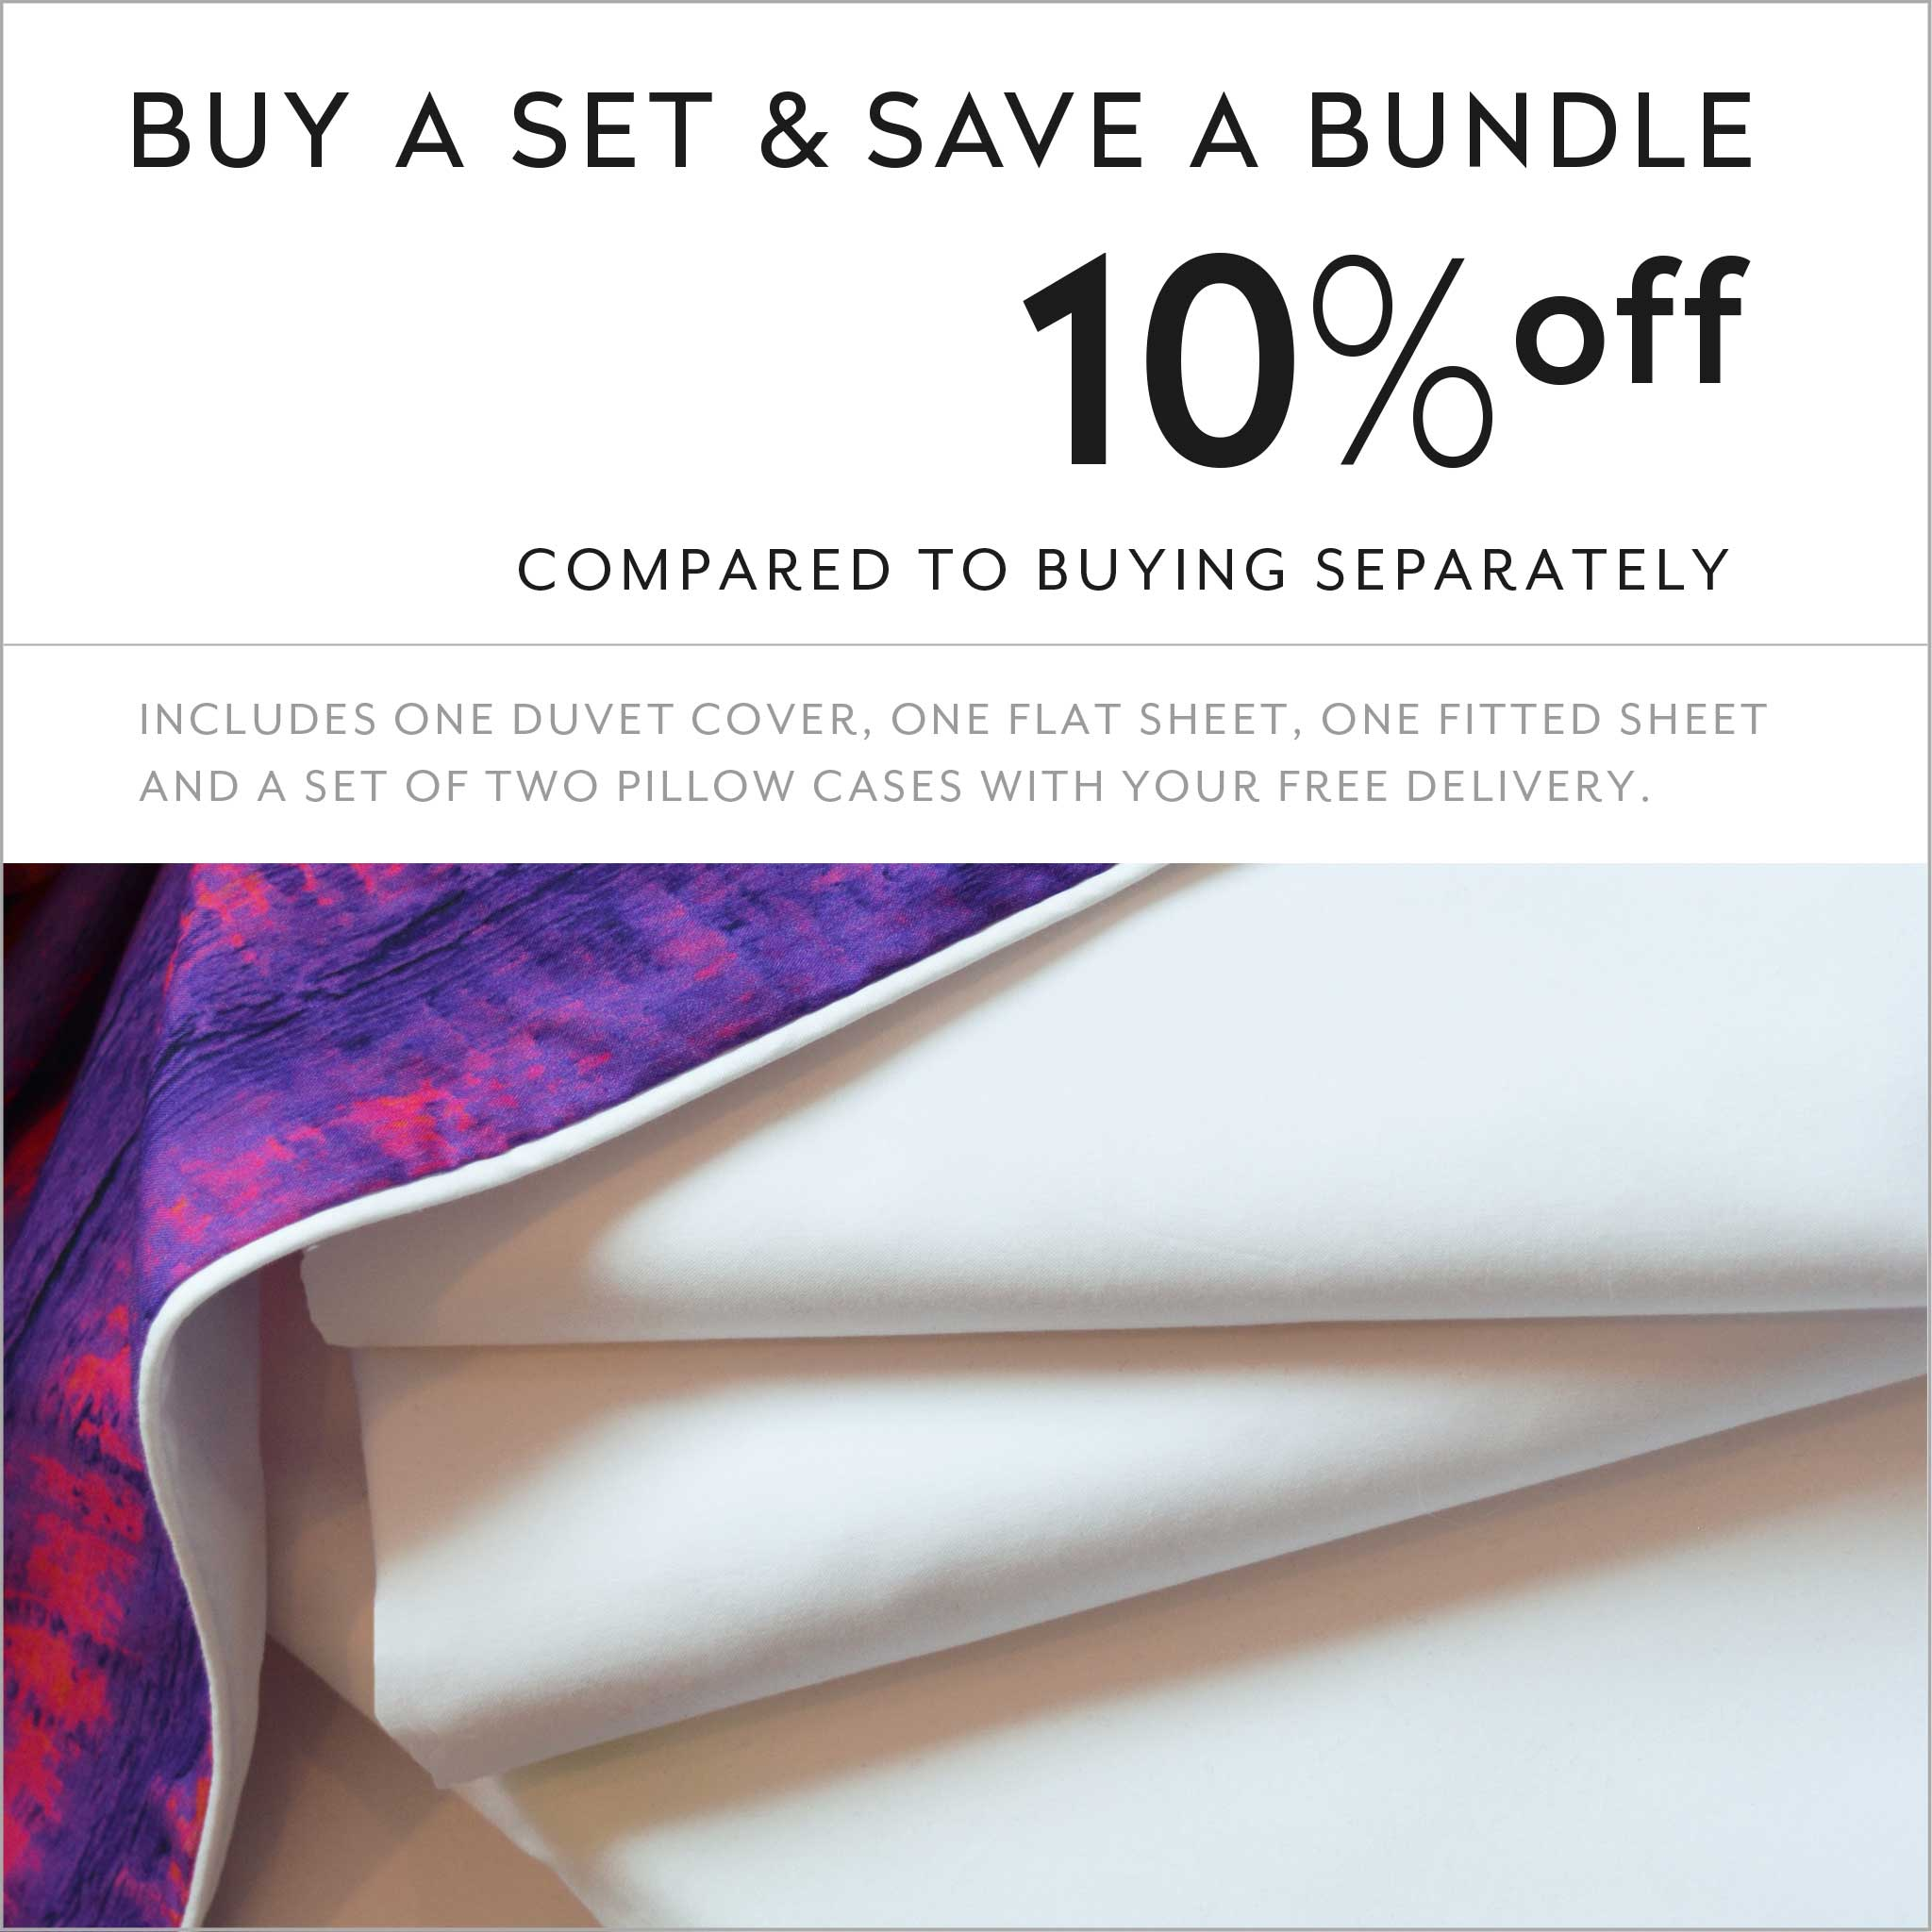 ZayZay luxury linen set save 10 percent Saffron Shangrilahh duvet cover sheets pillowcase